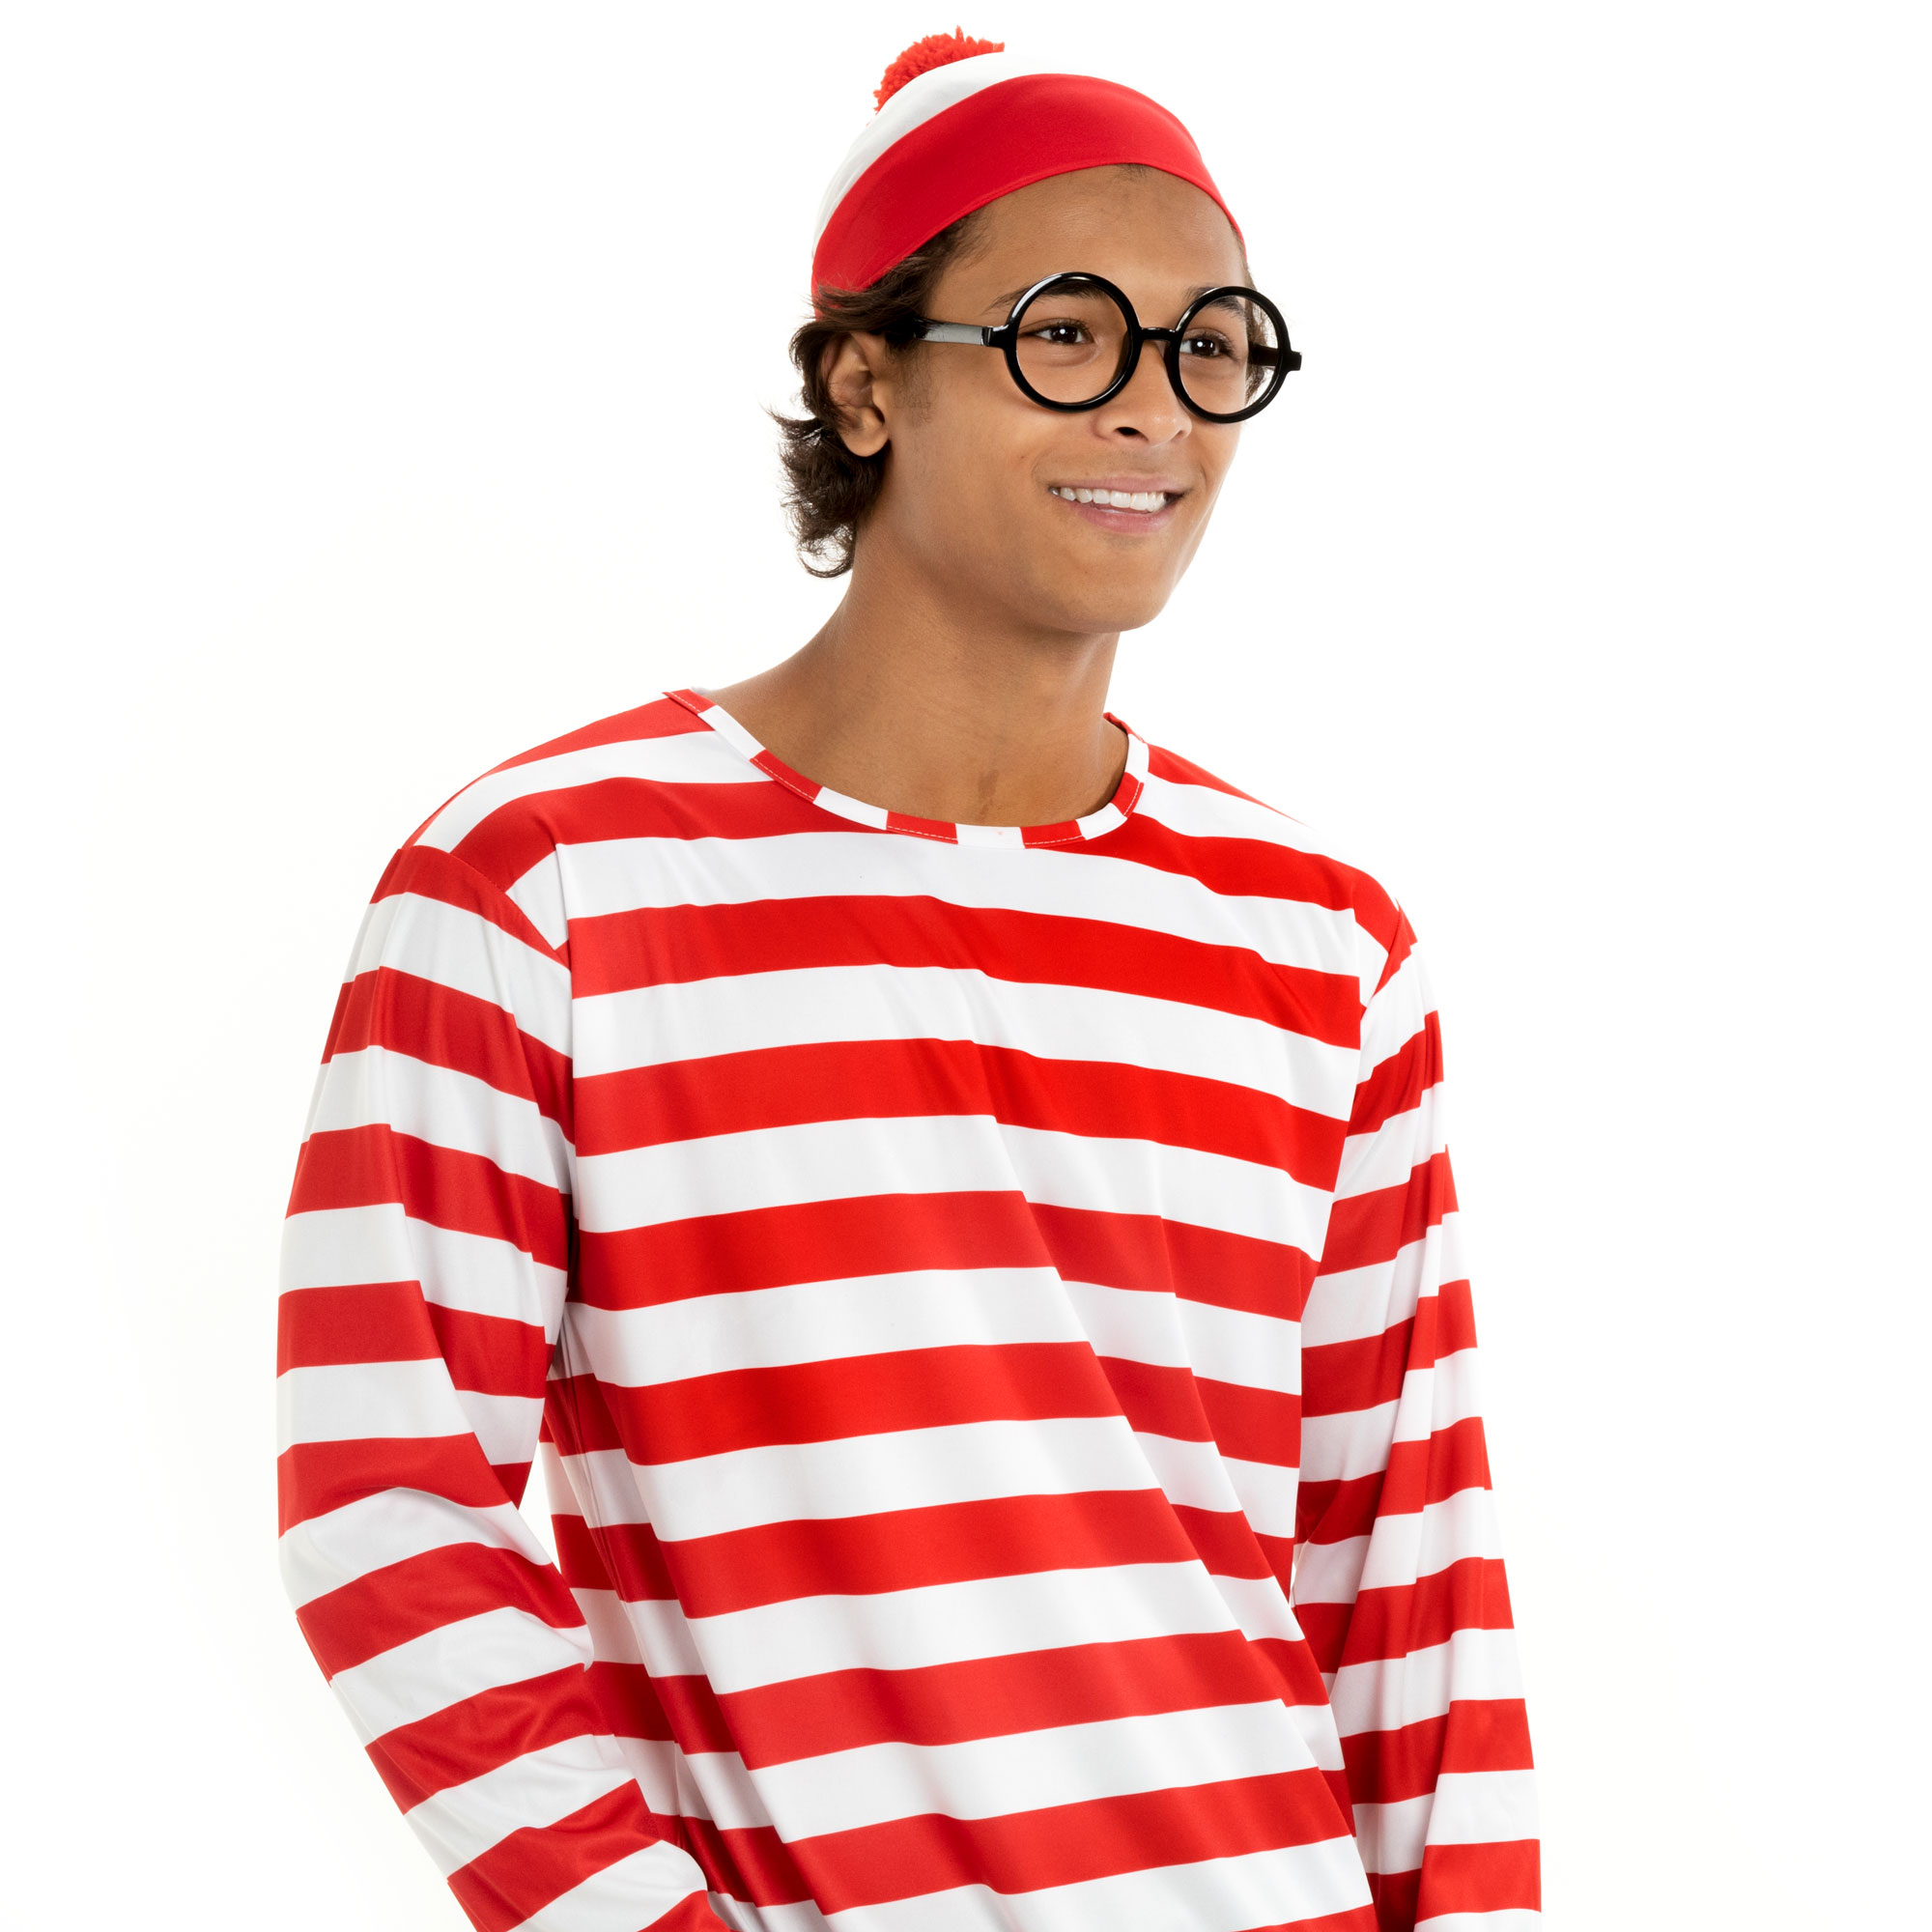 Where's Wally Halloween Costume - Men's Cosplay Outfit, M